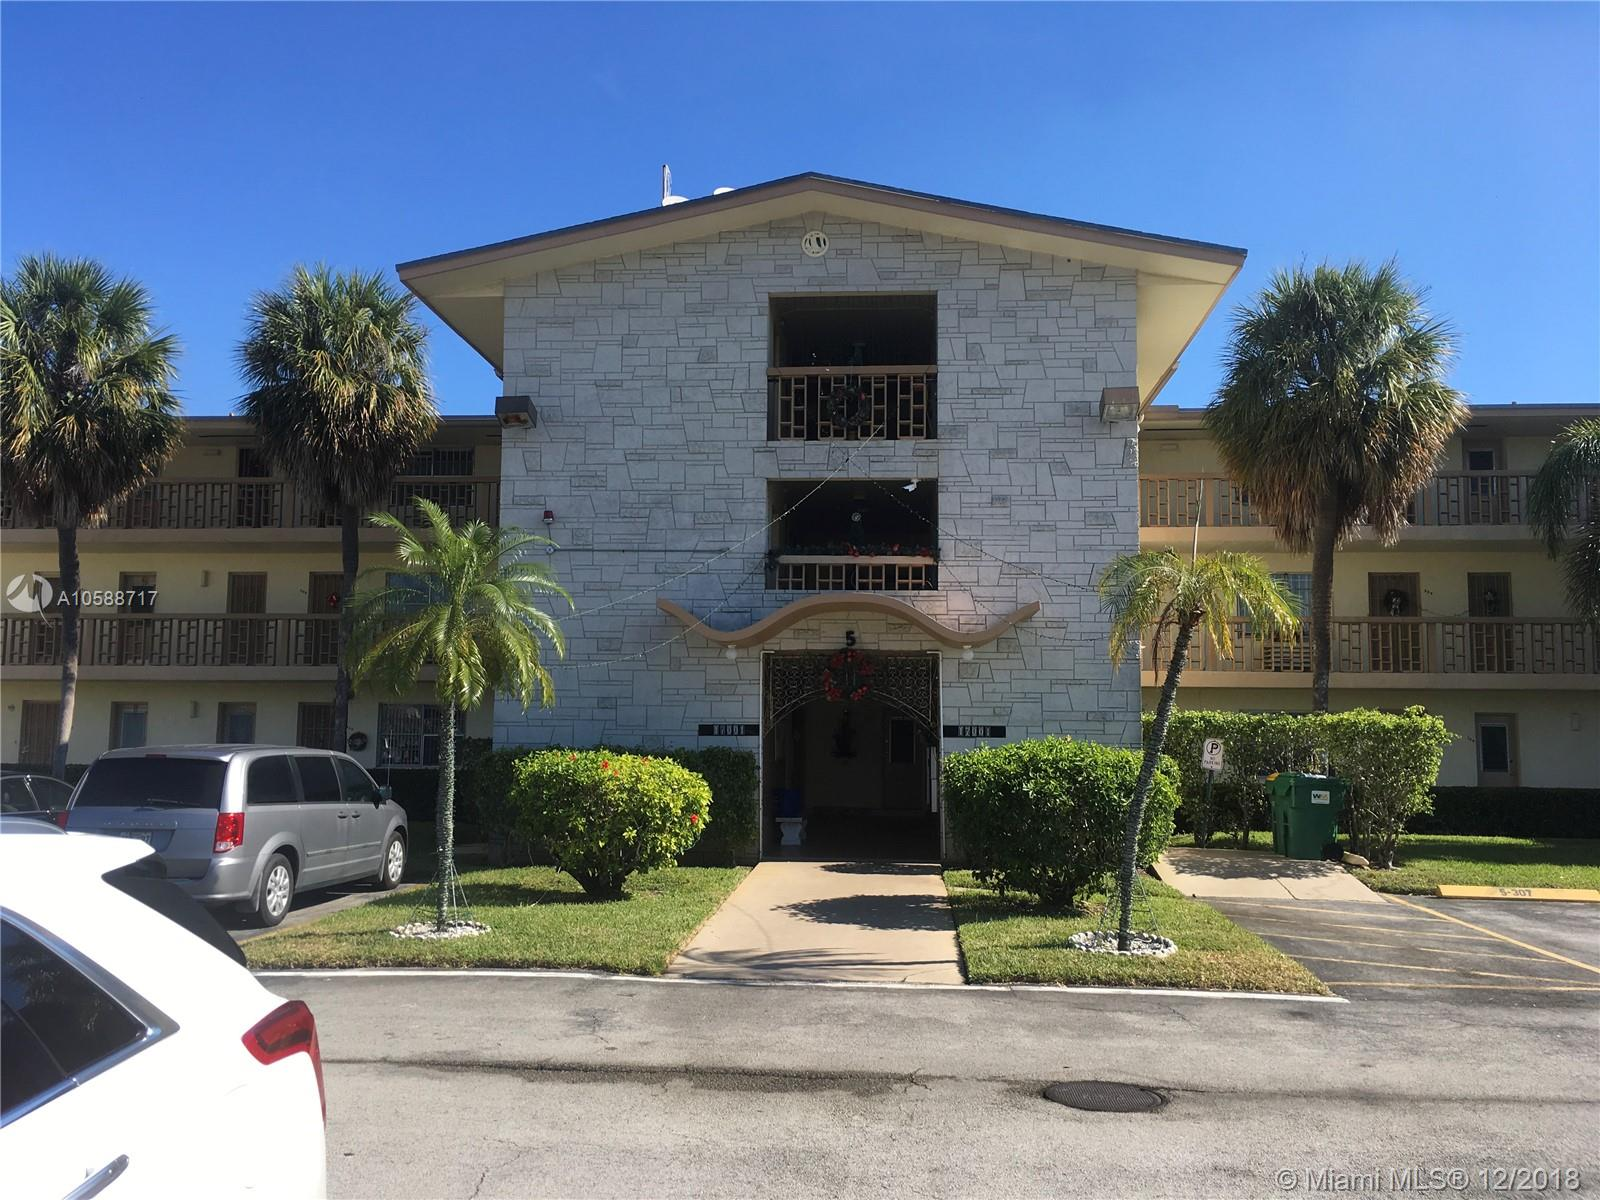 17001 NE 13th Ave #304 For Sale A10588717, FL